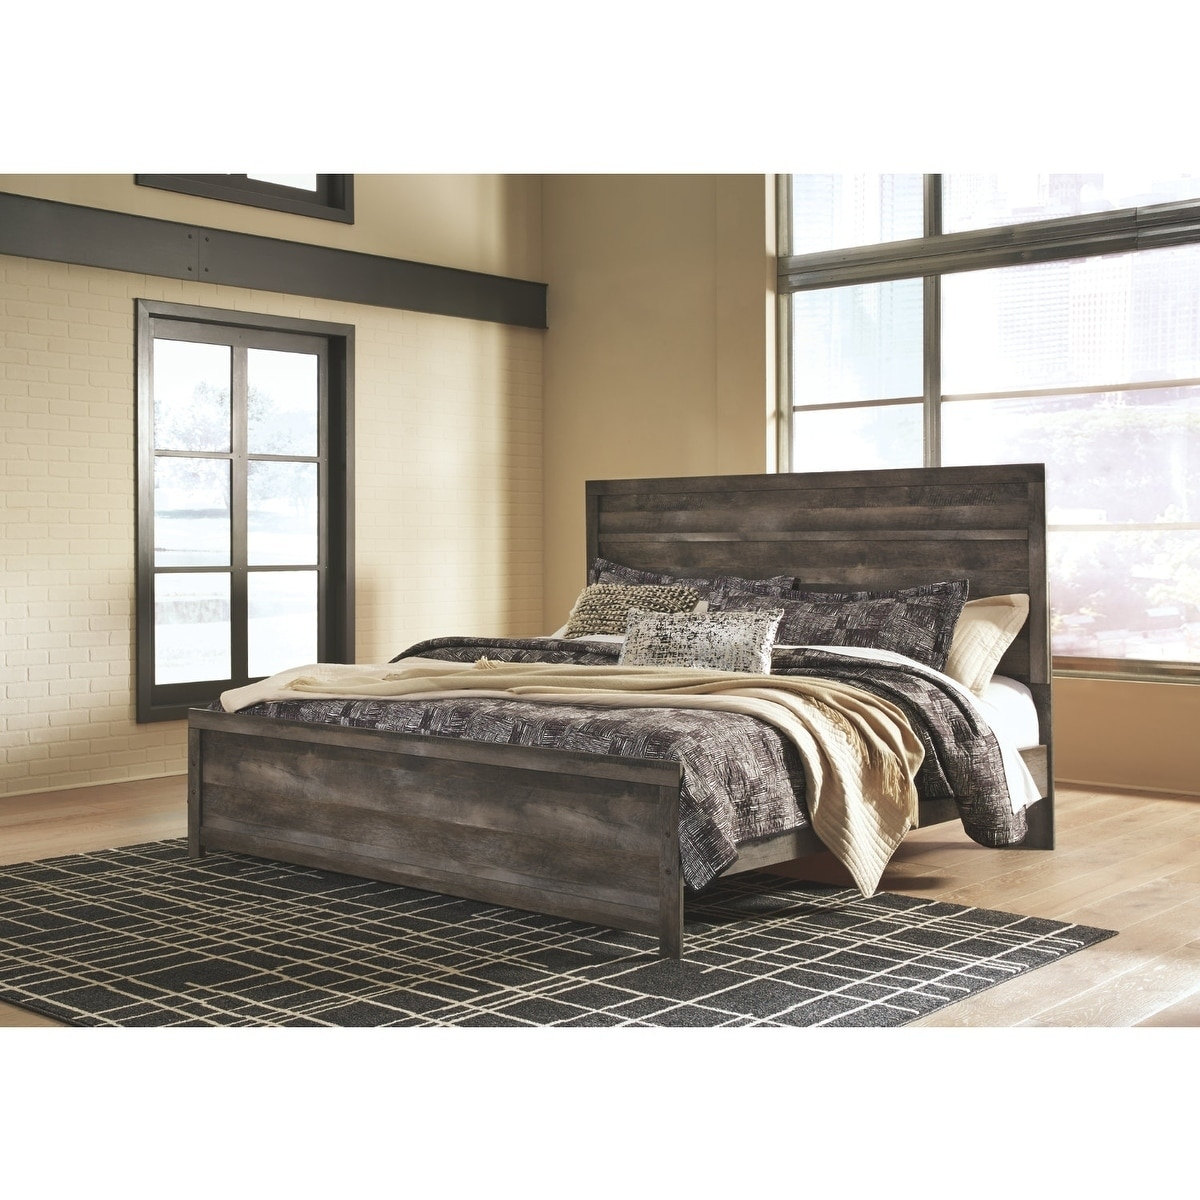 sale retailer 5c9d8 1e57a Wynnlow Grey Panel Bed.